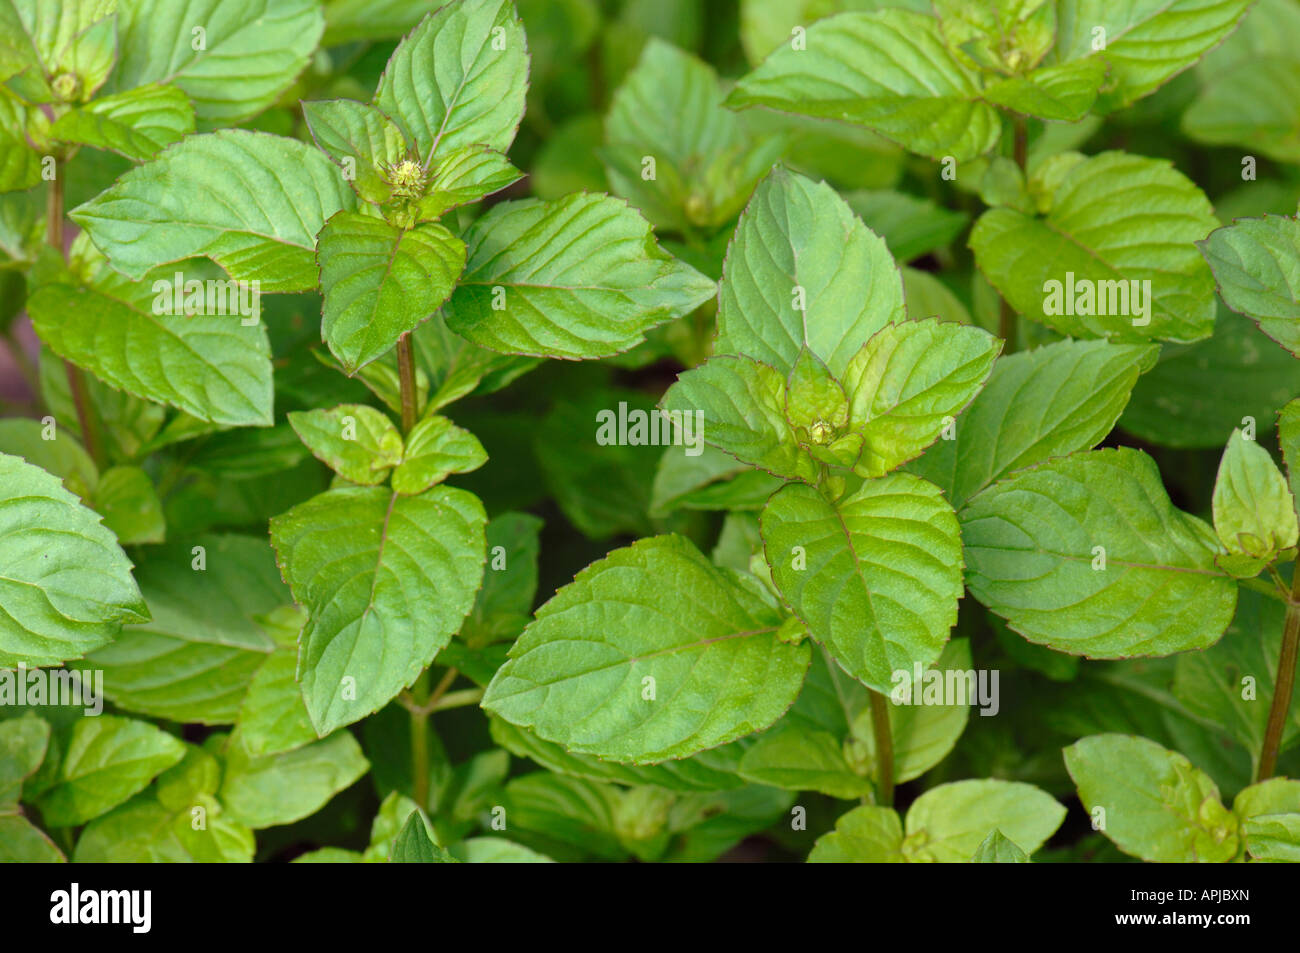 lemon mint bergamot mint mentha x citrata mentha x piperita stock photo royalty free image. Black Bedroom Furniture Sets. Home Design Ideas